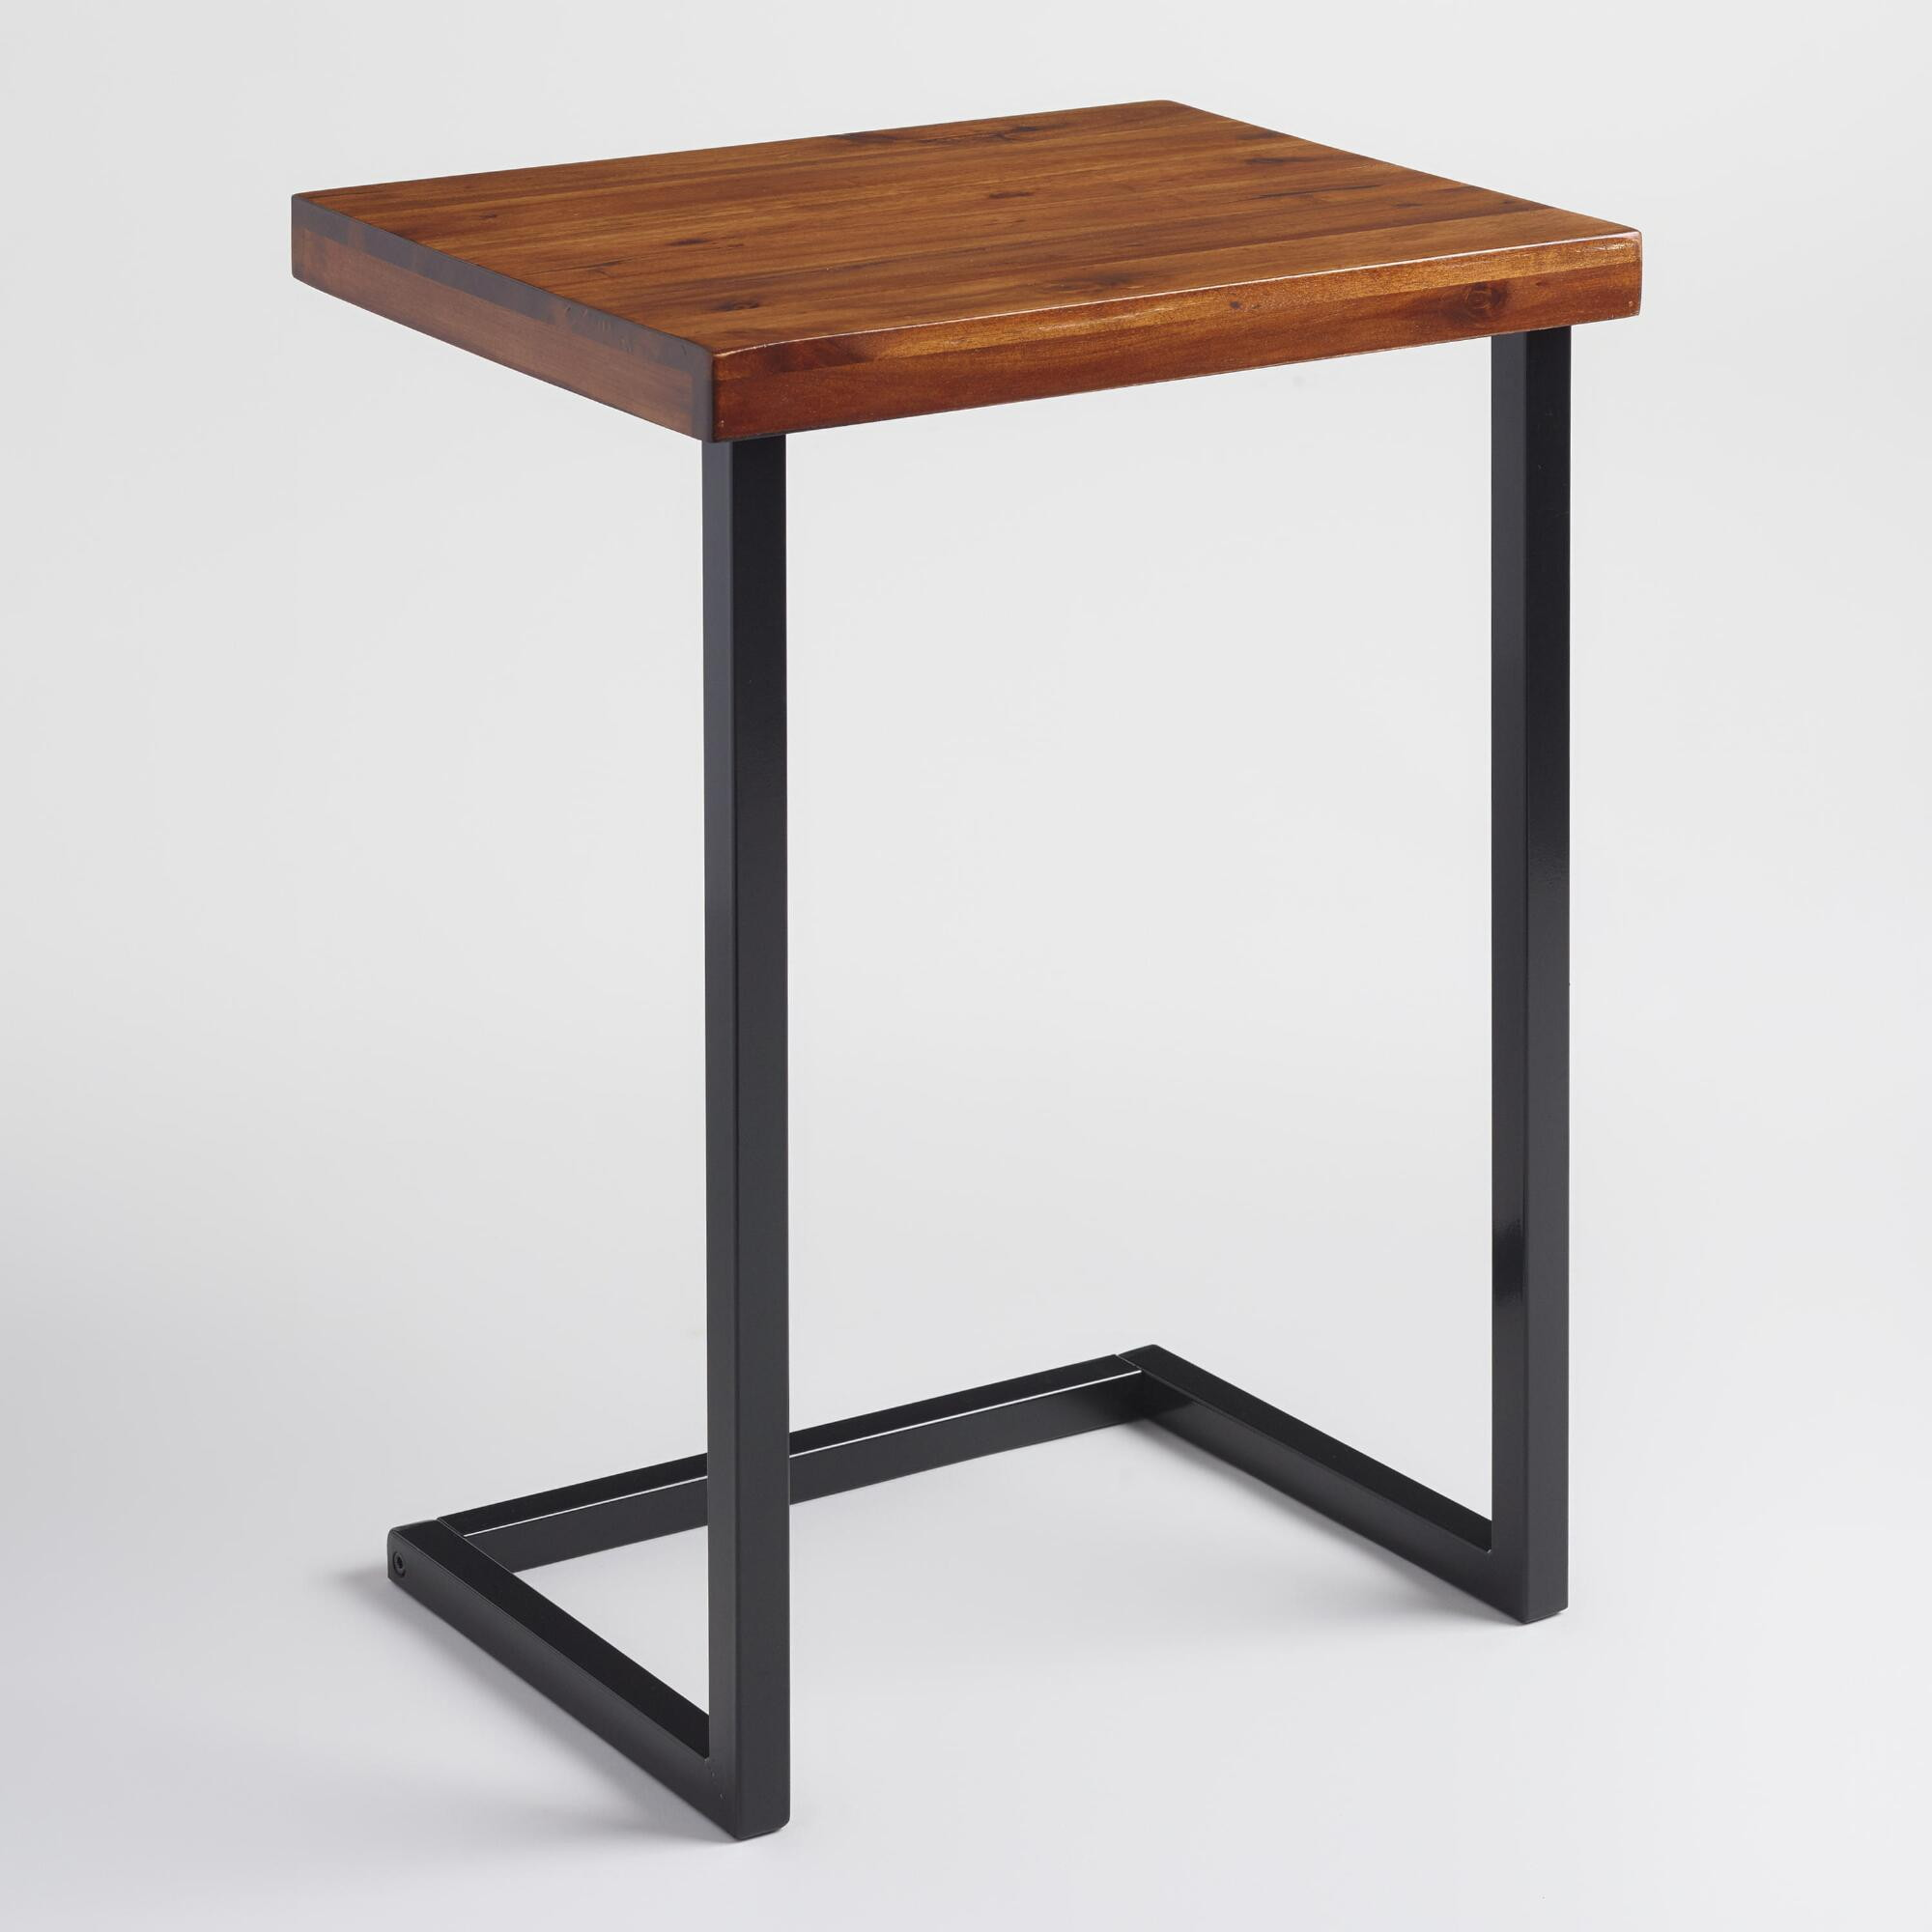 thin end table narrow nightstand ideas pottery barn antique nightstands small accent shaped faux bamboo tables plant quilted runner modern metal and glass coffee west elm storage